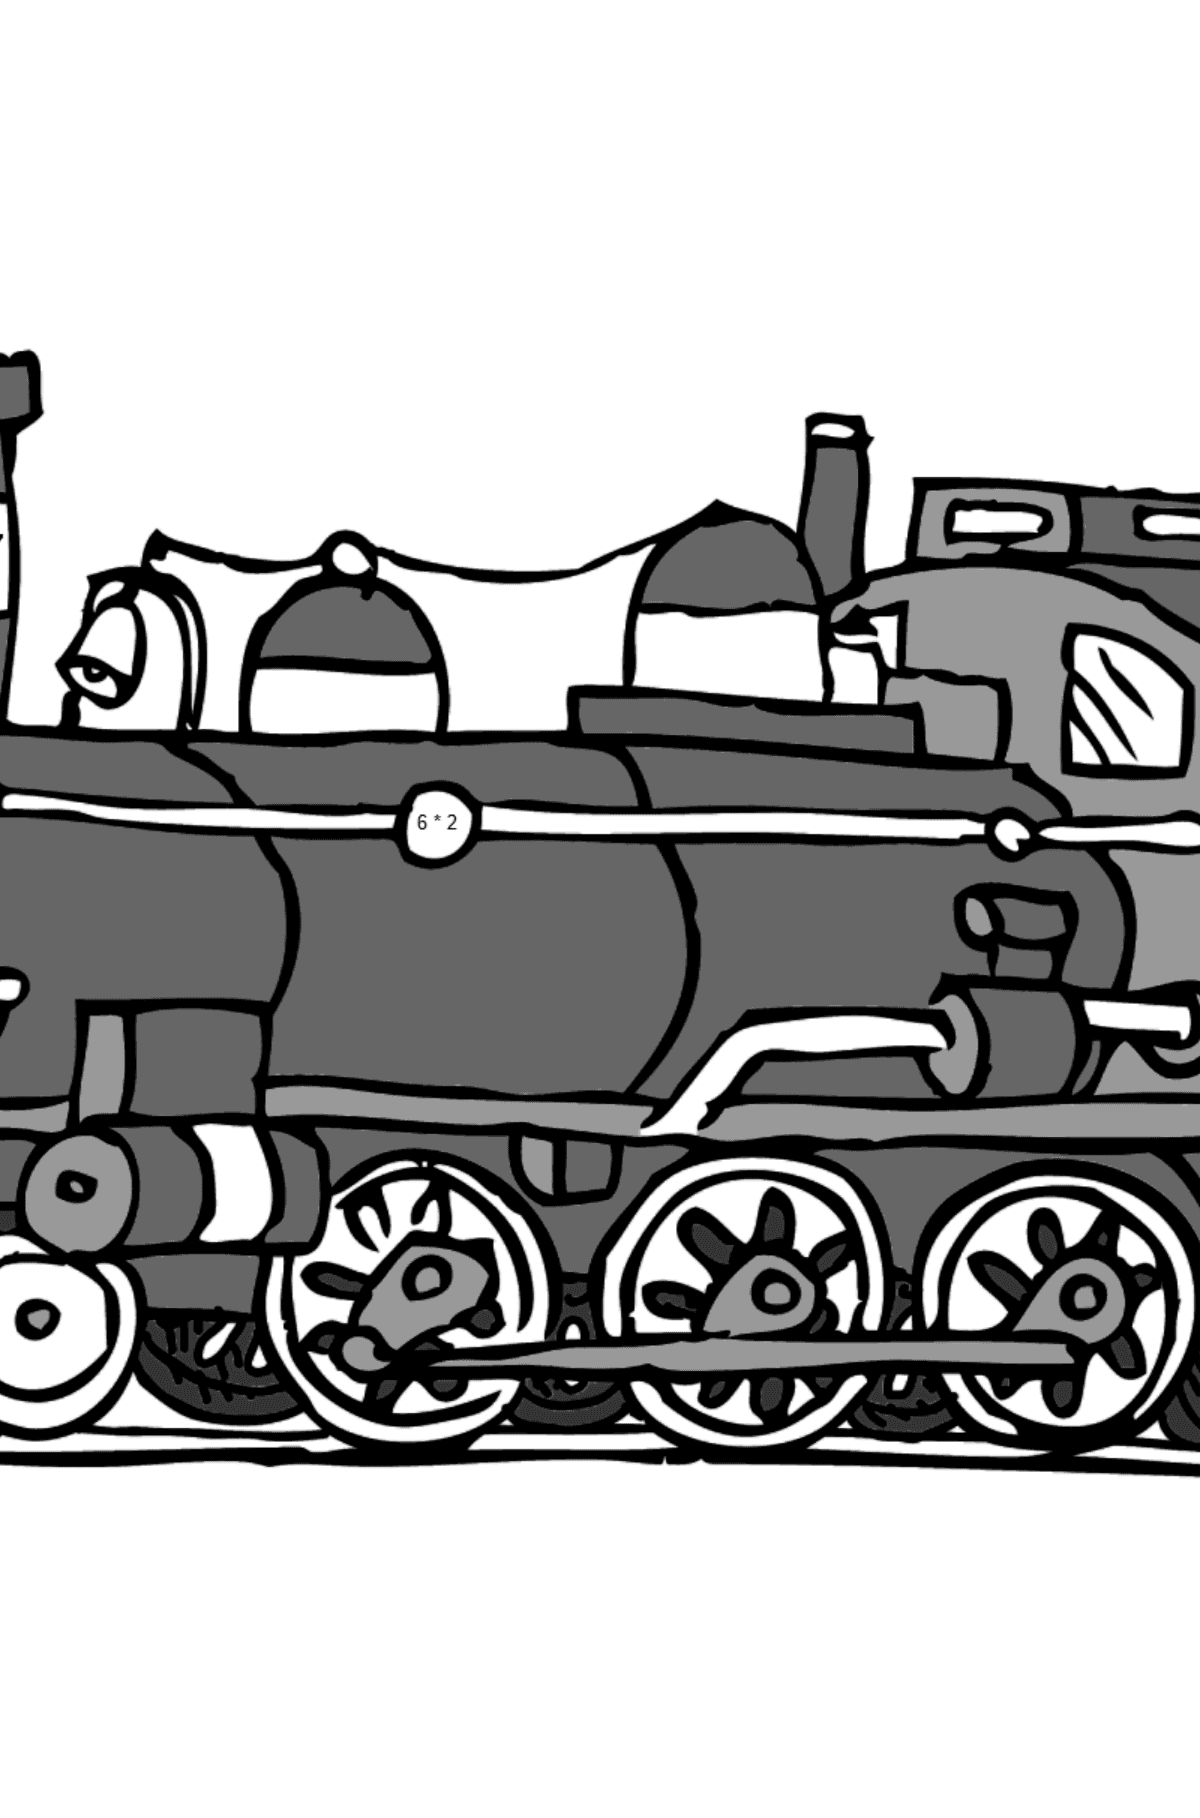 Coloring Page - A Locomotive - Math Coloring - Multiplication for Kids